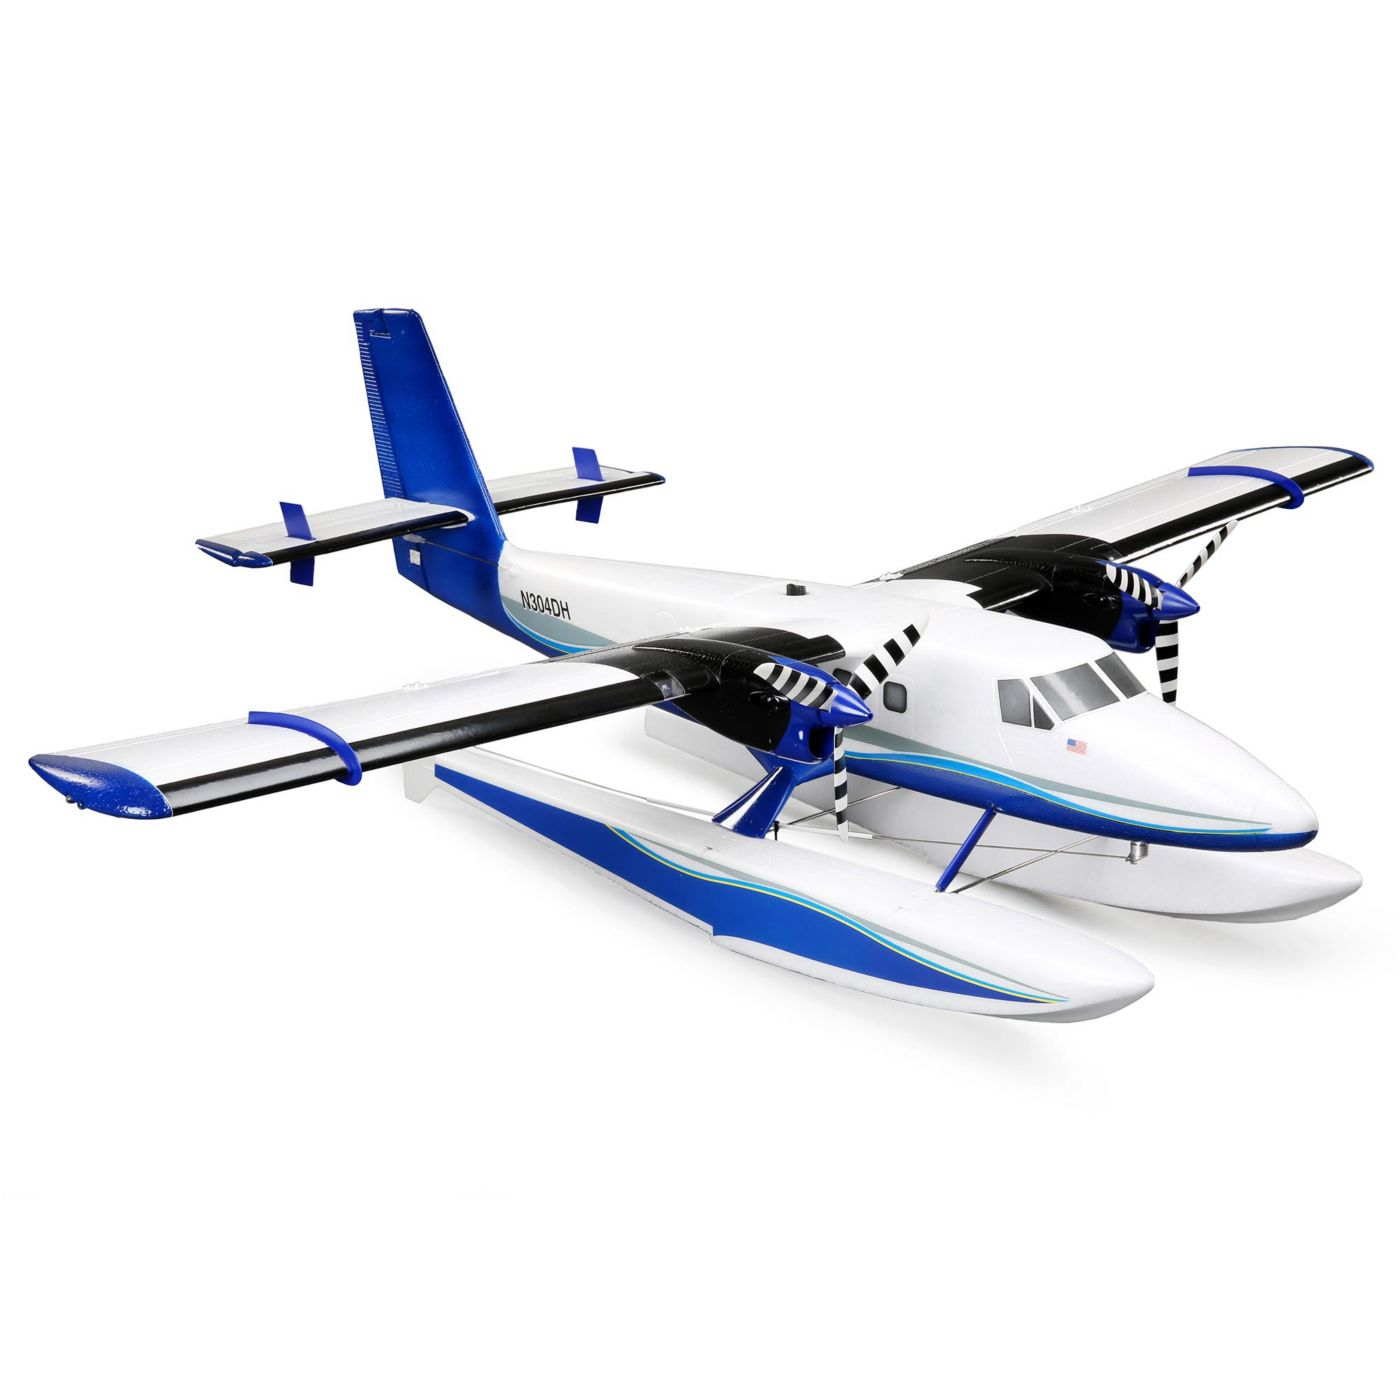 E-flite Twin Otter 1.2m PNP, includes Floats